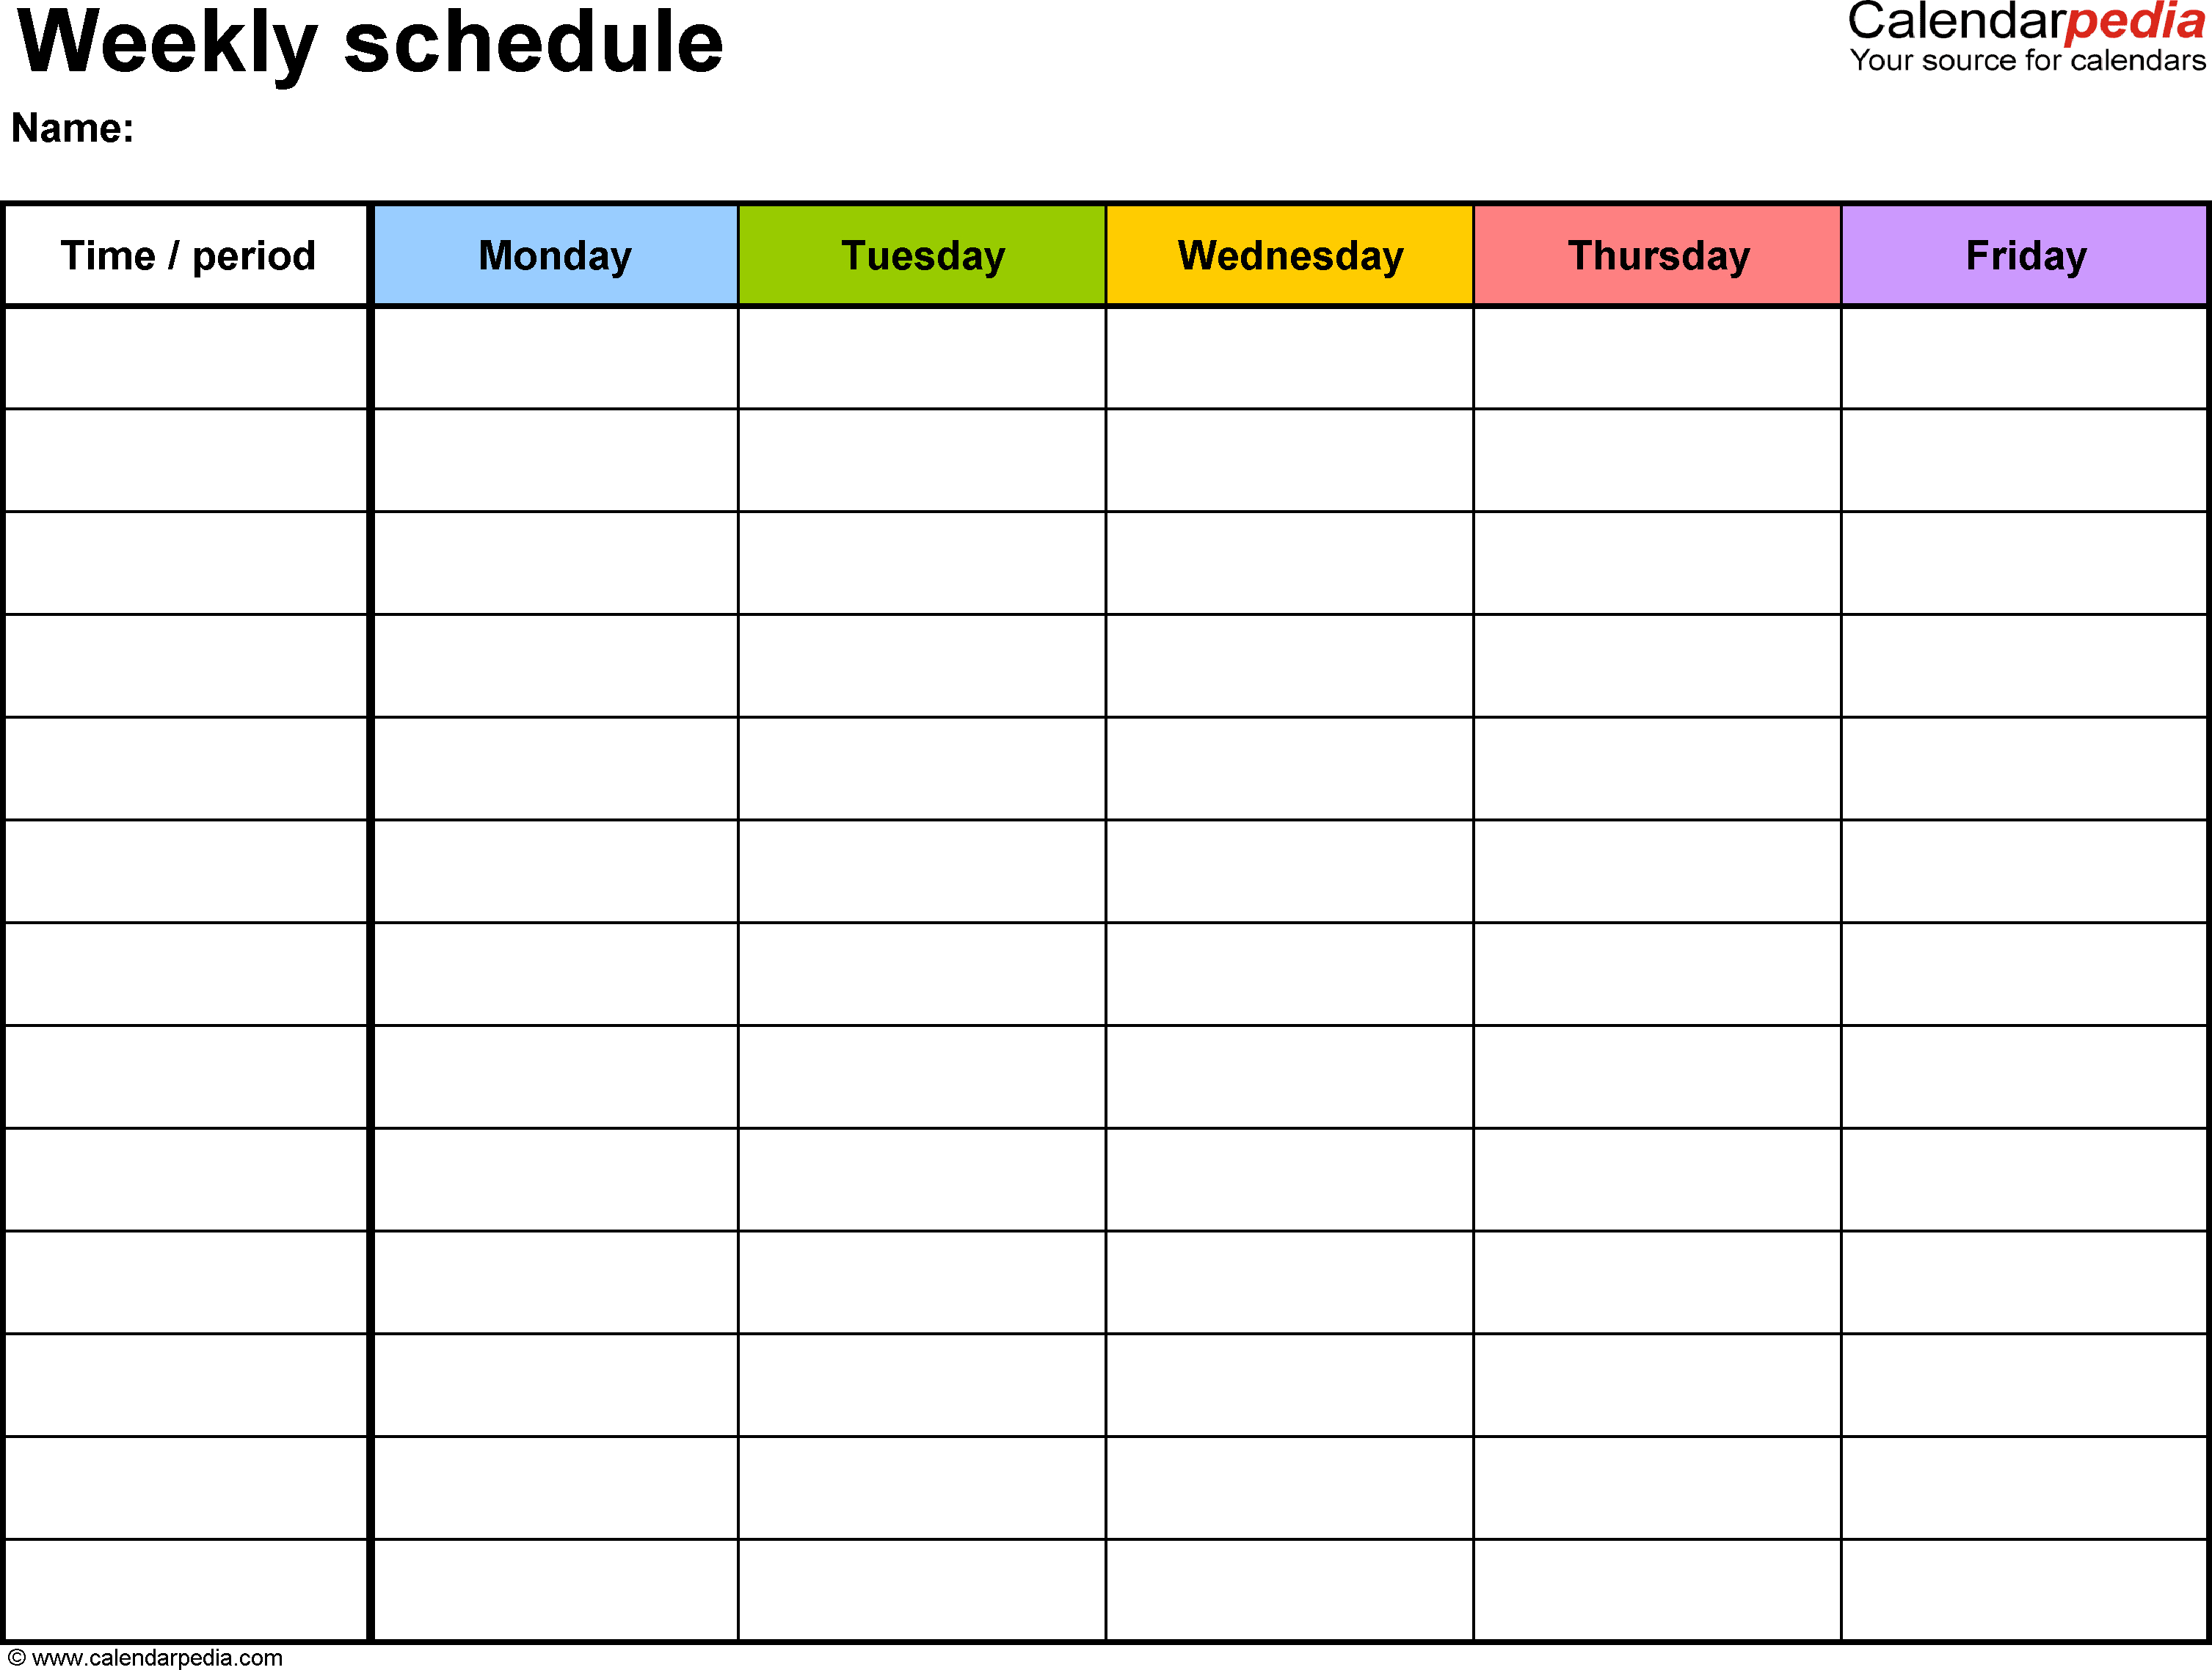 Weekly Schedule Template For Word Version 1: Landscape, 1 Mon – Friday Weekly Celendar